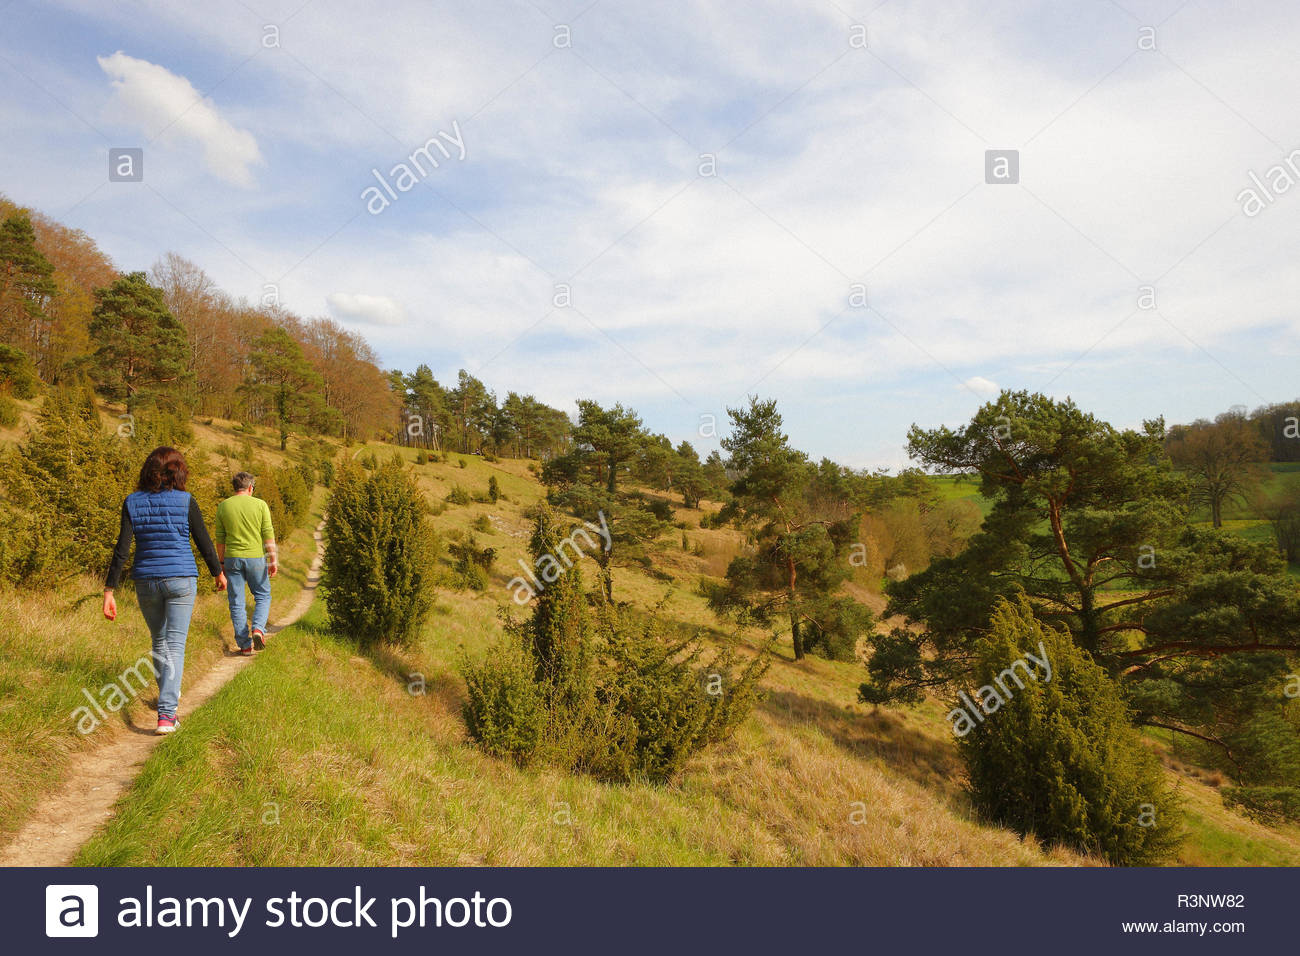 Couple of walkers walking on a path crossing a limestone hill strewn with Juniper (Juniperus communis) and Pine (Pinus silvestris), in spring, in April, Picardy, France. - Stock Image